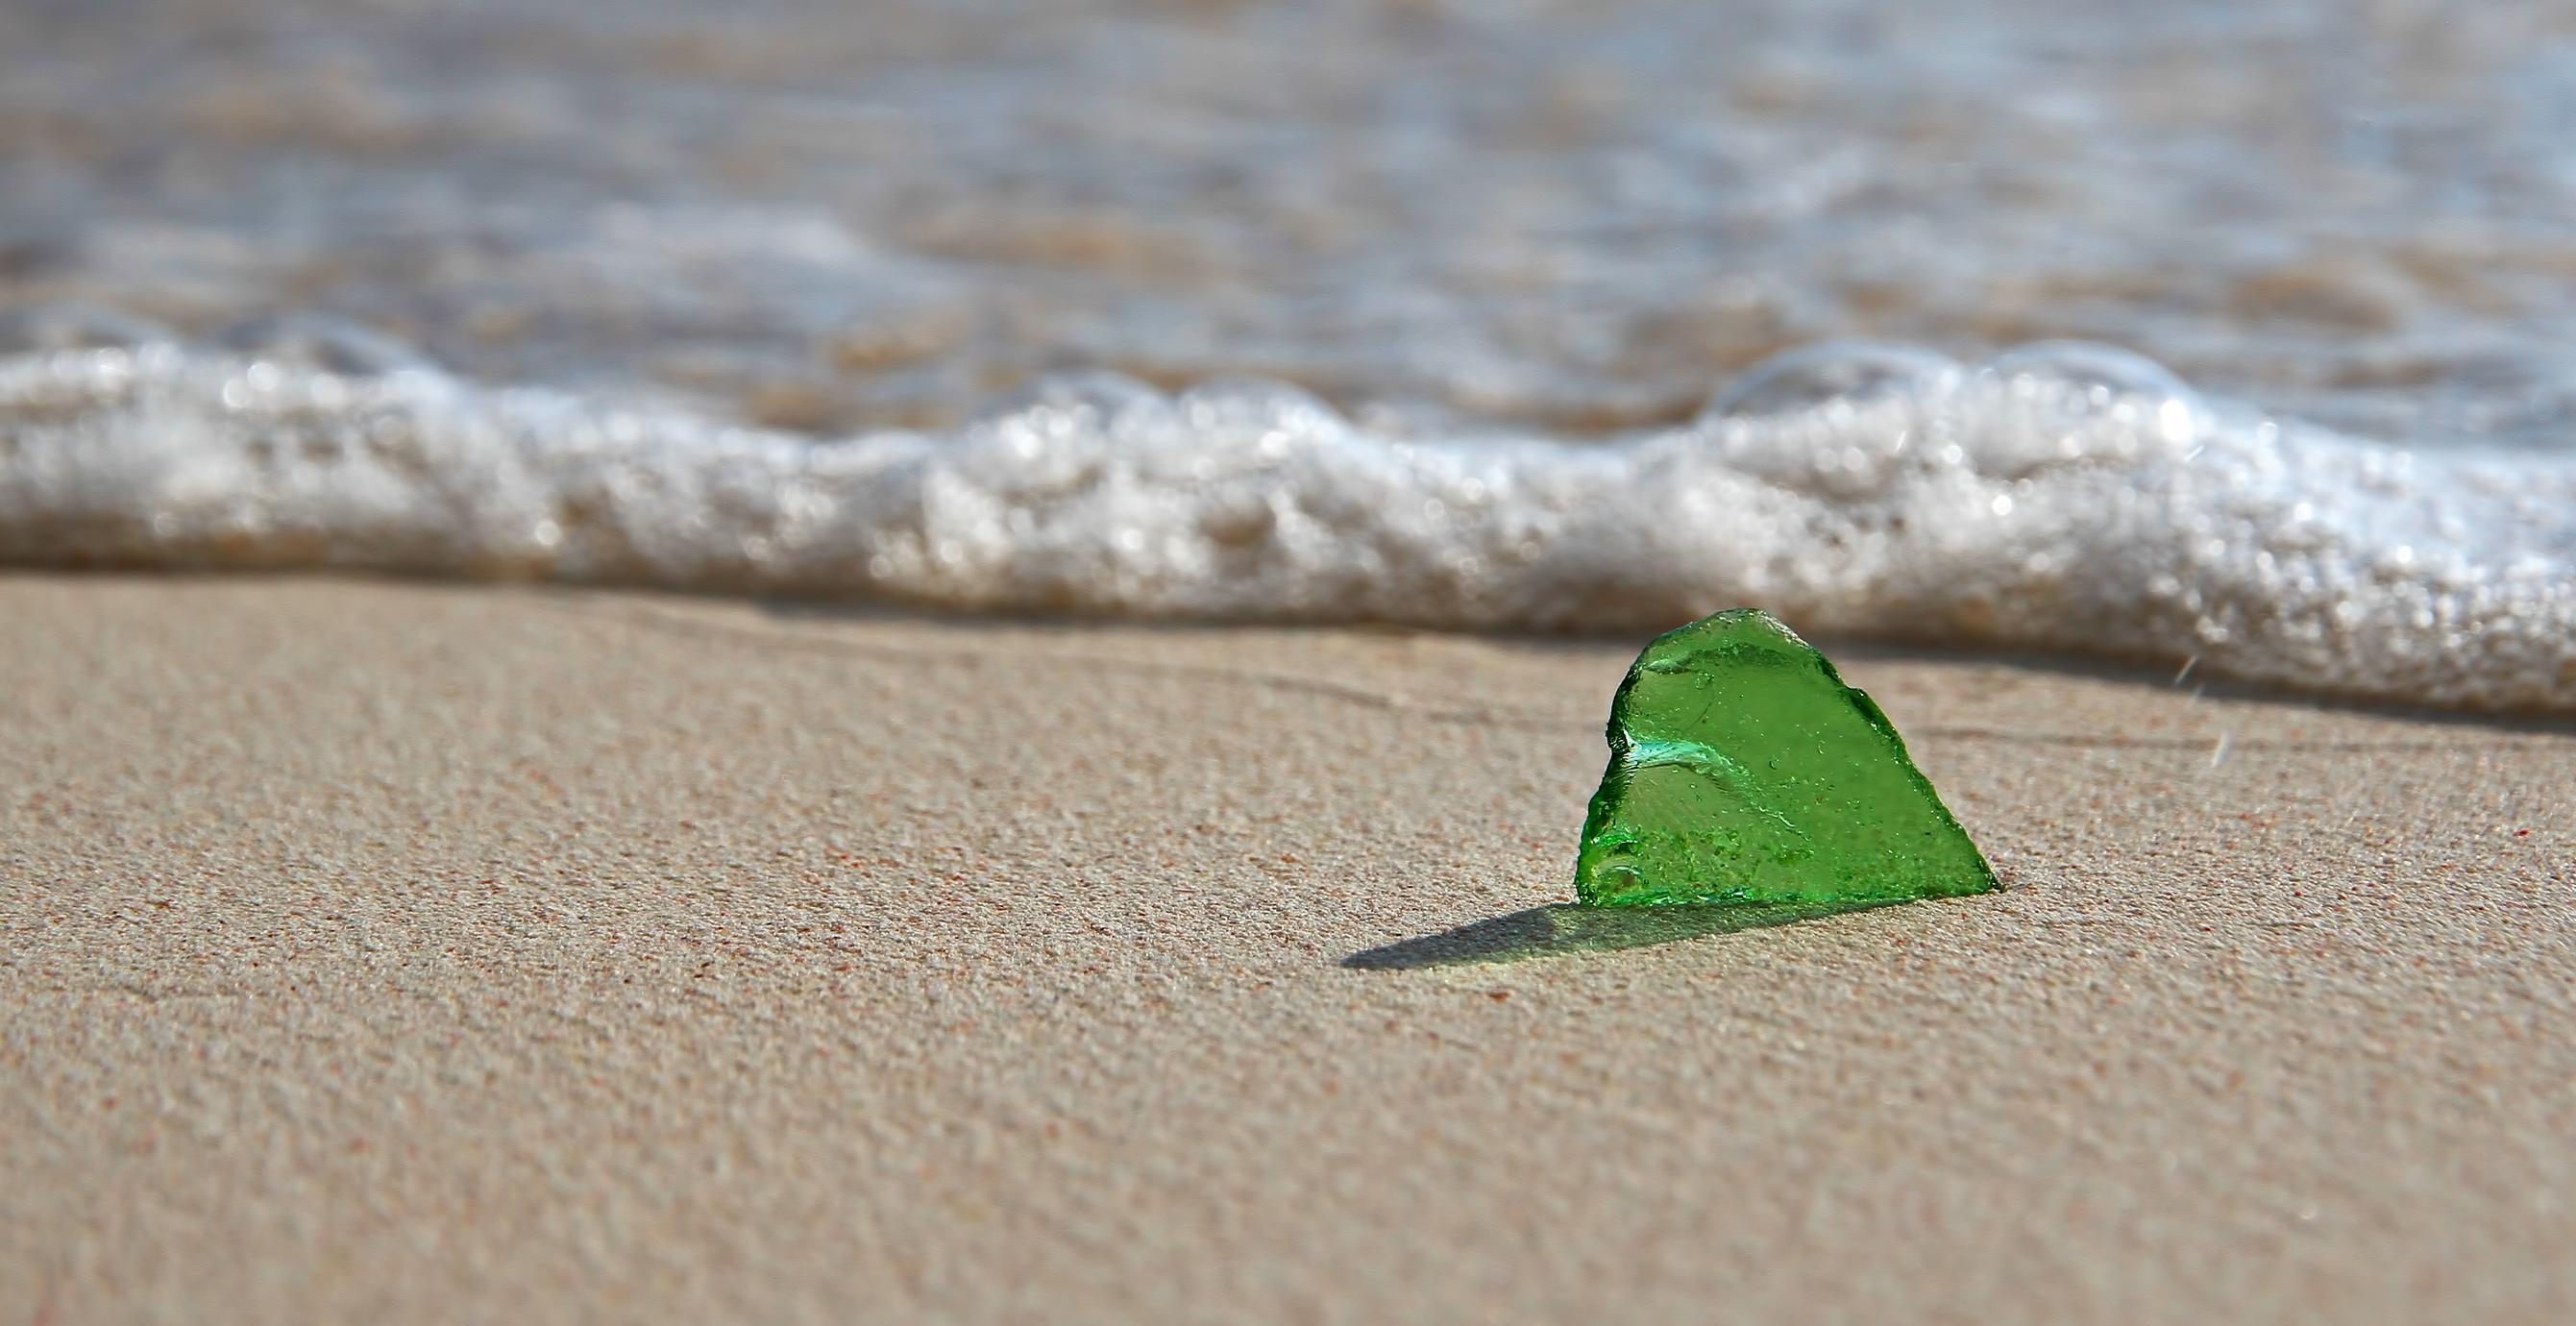 Green sea-glass in sand in front of a wave.